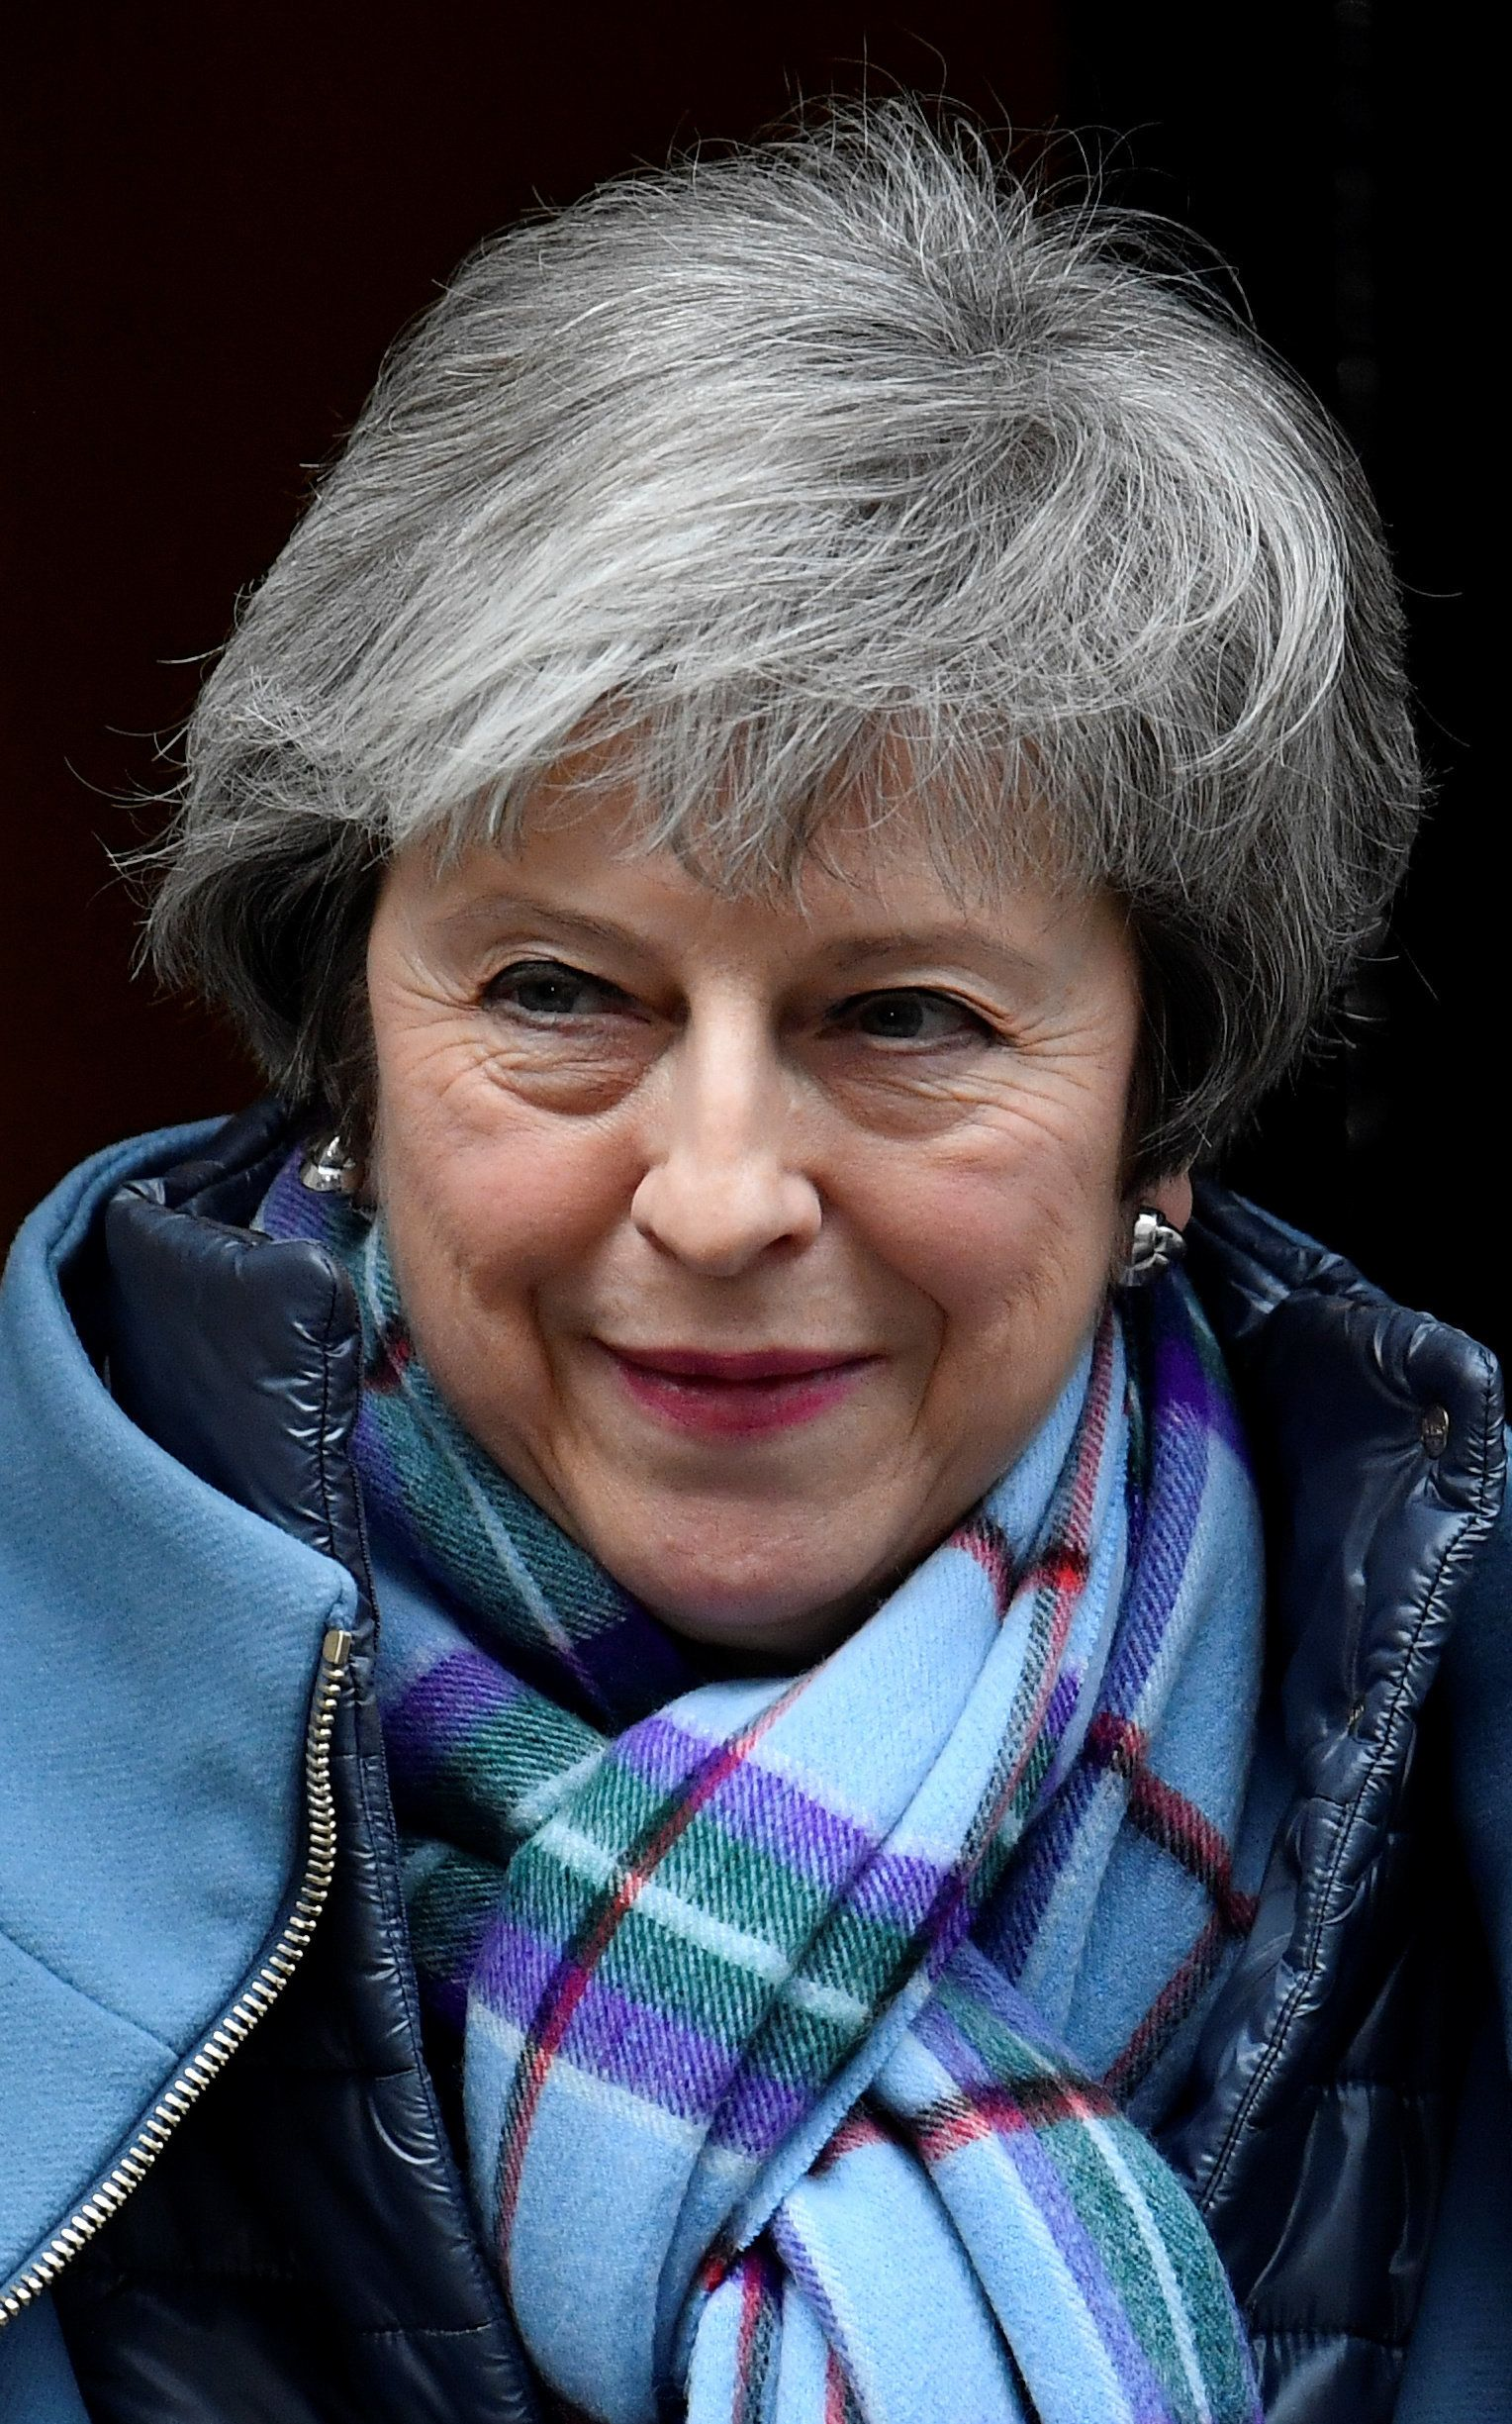 No-Deal Brexit More Likely As MPs Reject Bid To Extend Article 50